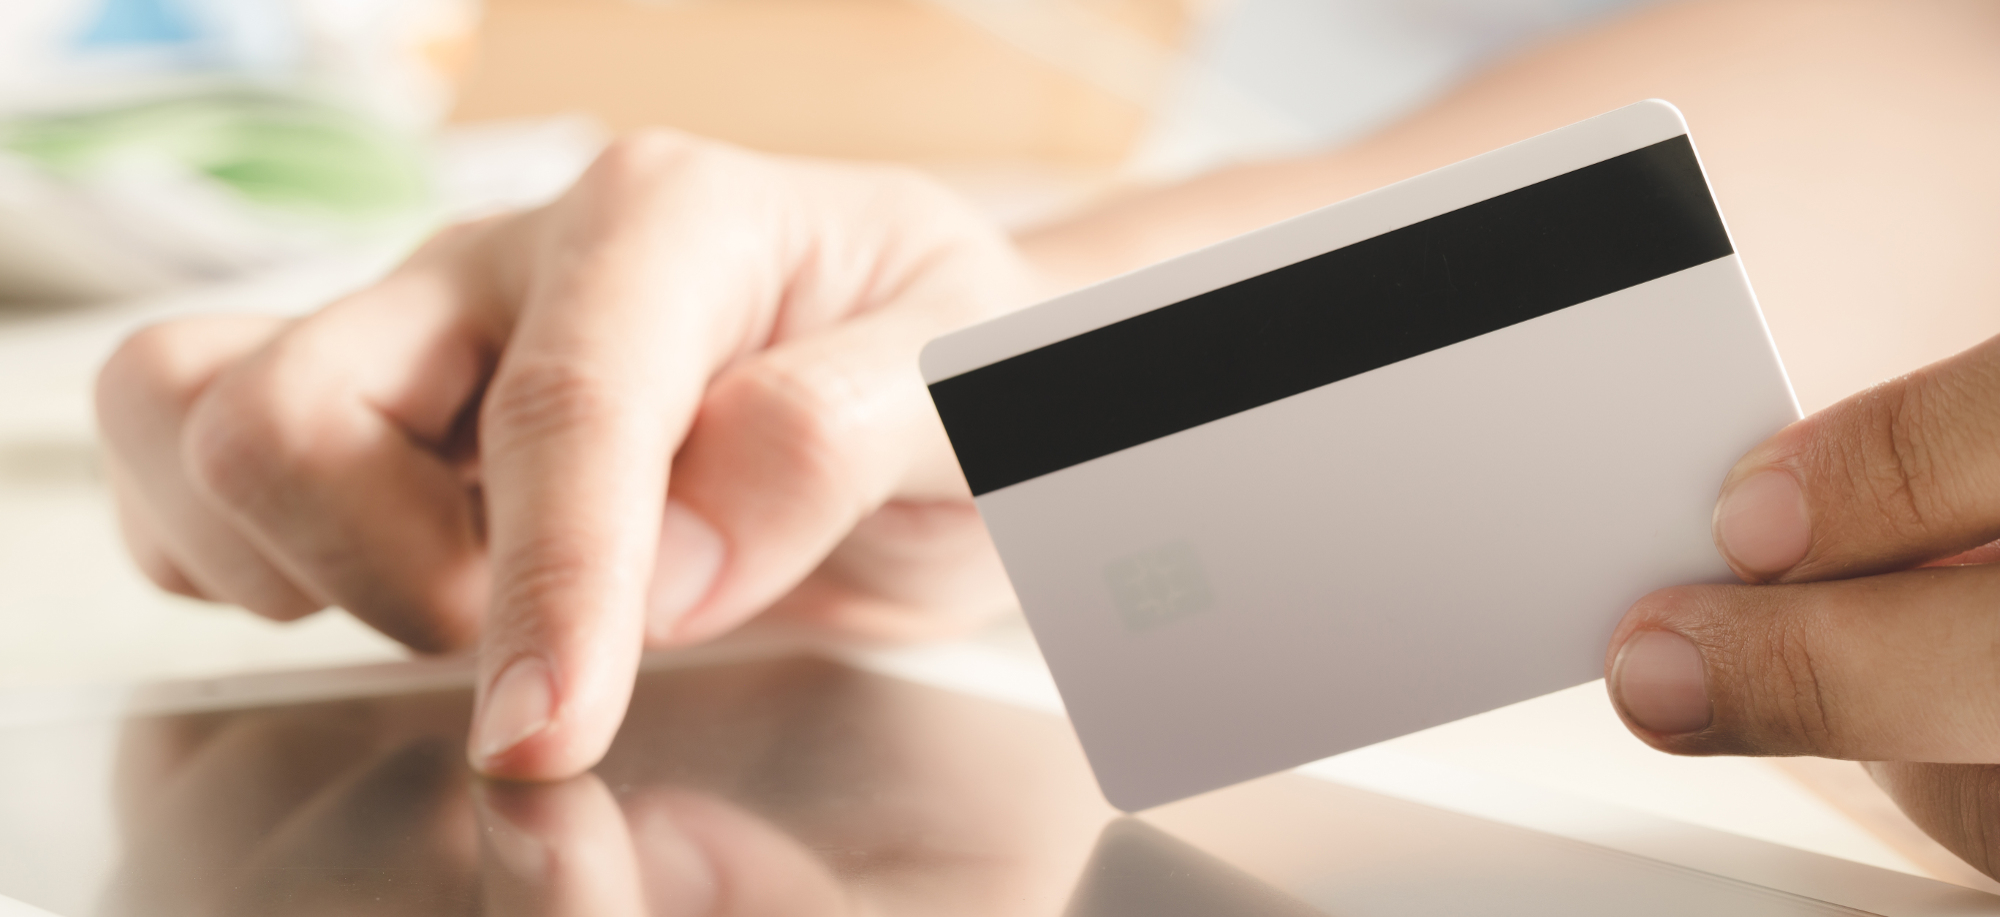 Online Shopping Concept with Hand Holding Credit Card